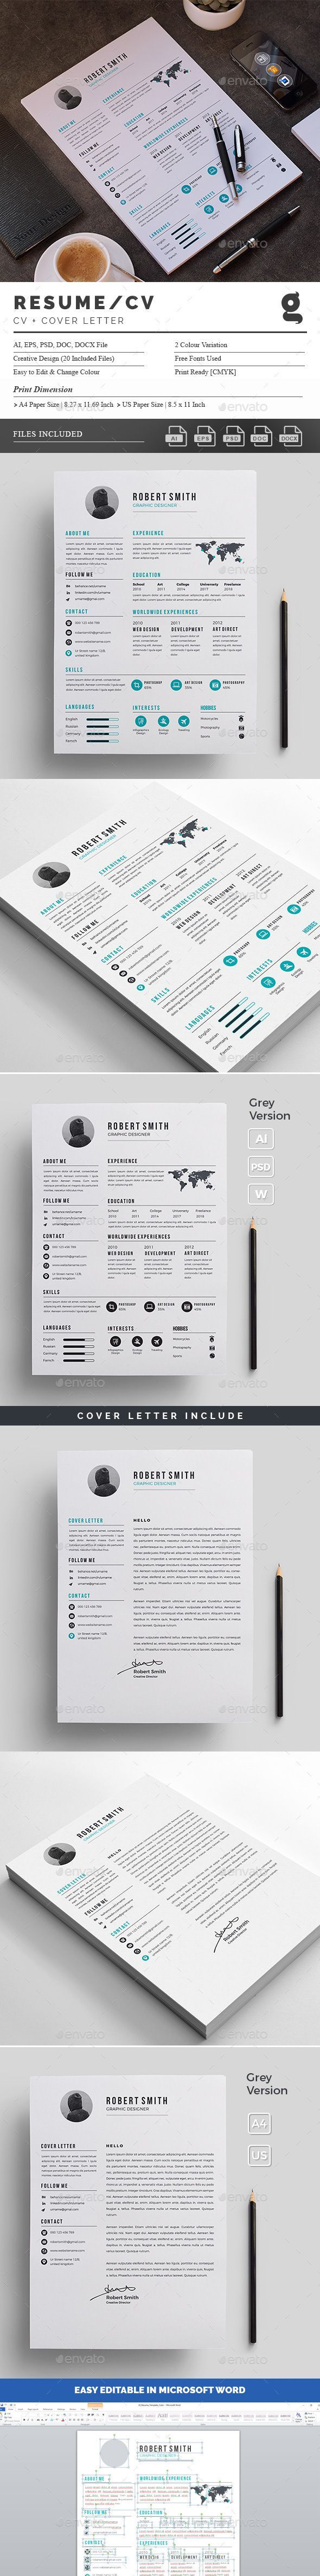 medical billing resumes%0A Resumes  u     Photoshop PSD  designer  letterhead  u     Download      https   graphicriver